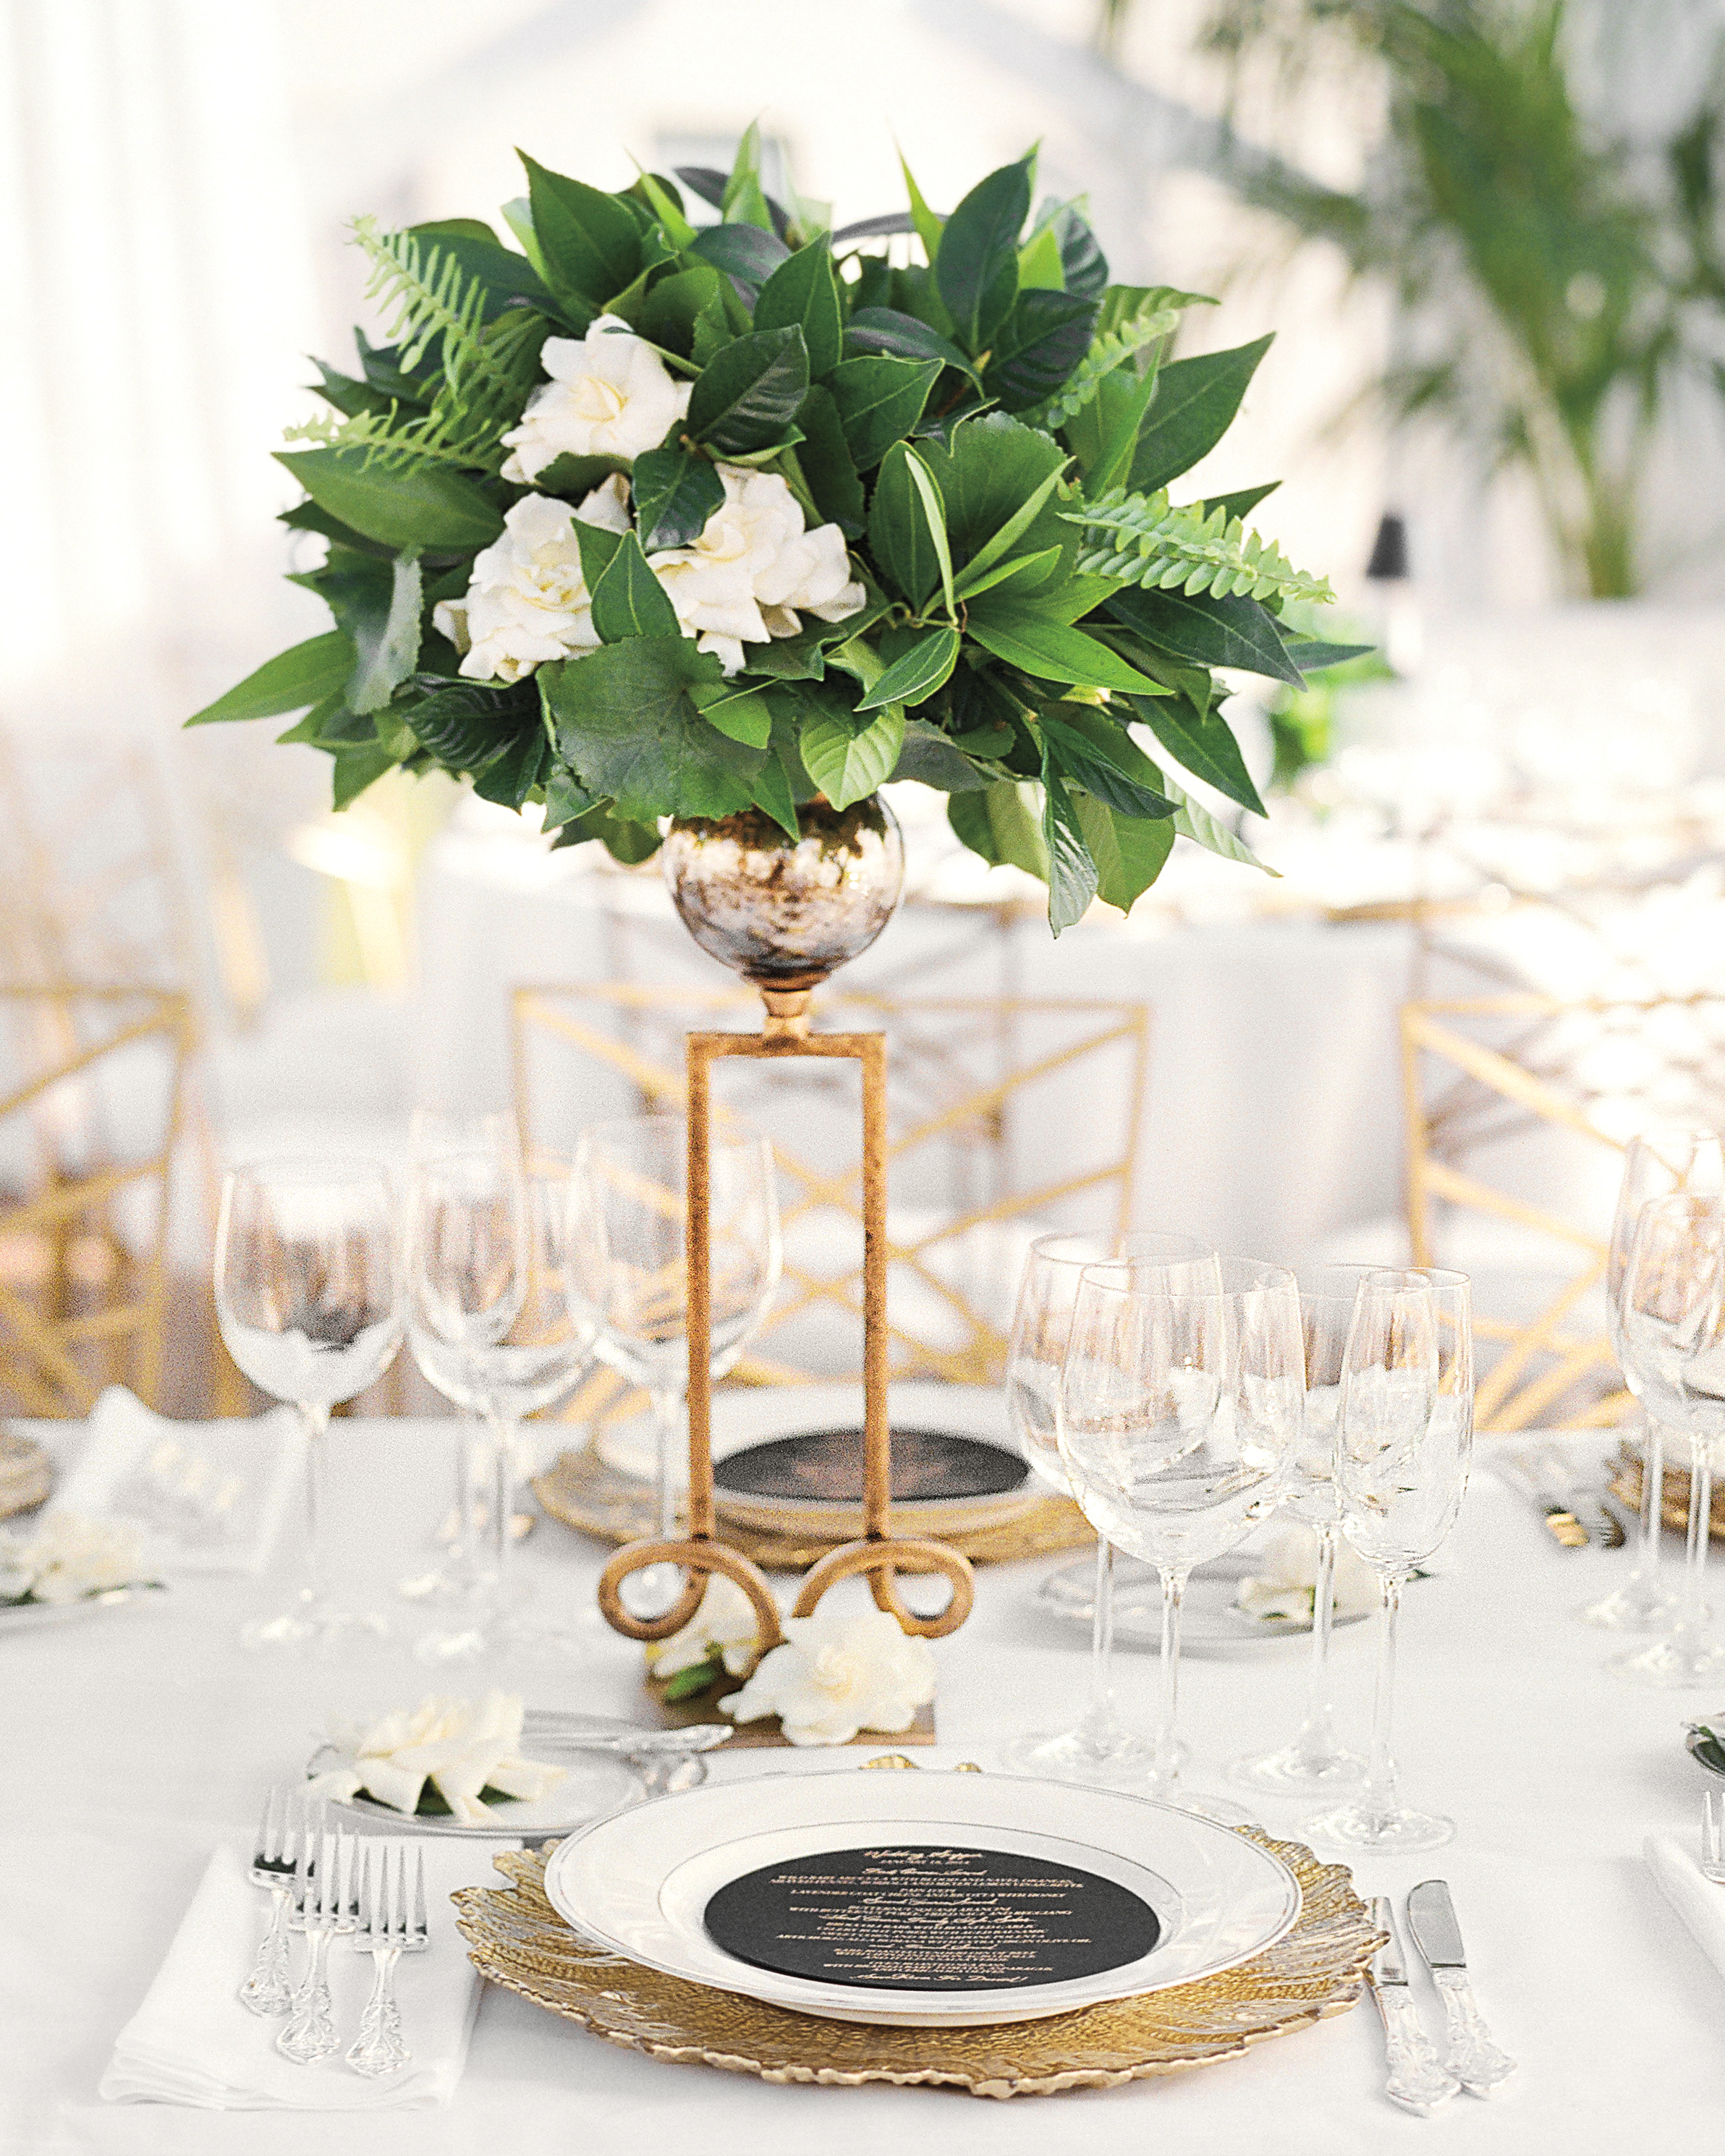 rw-jojo-eric-centerpiece-place-setting-047-elizabeth-messina-ds111226.jpg